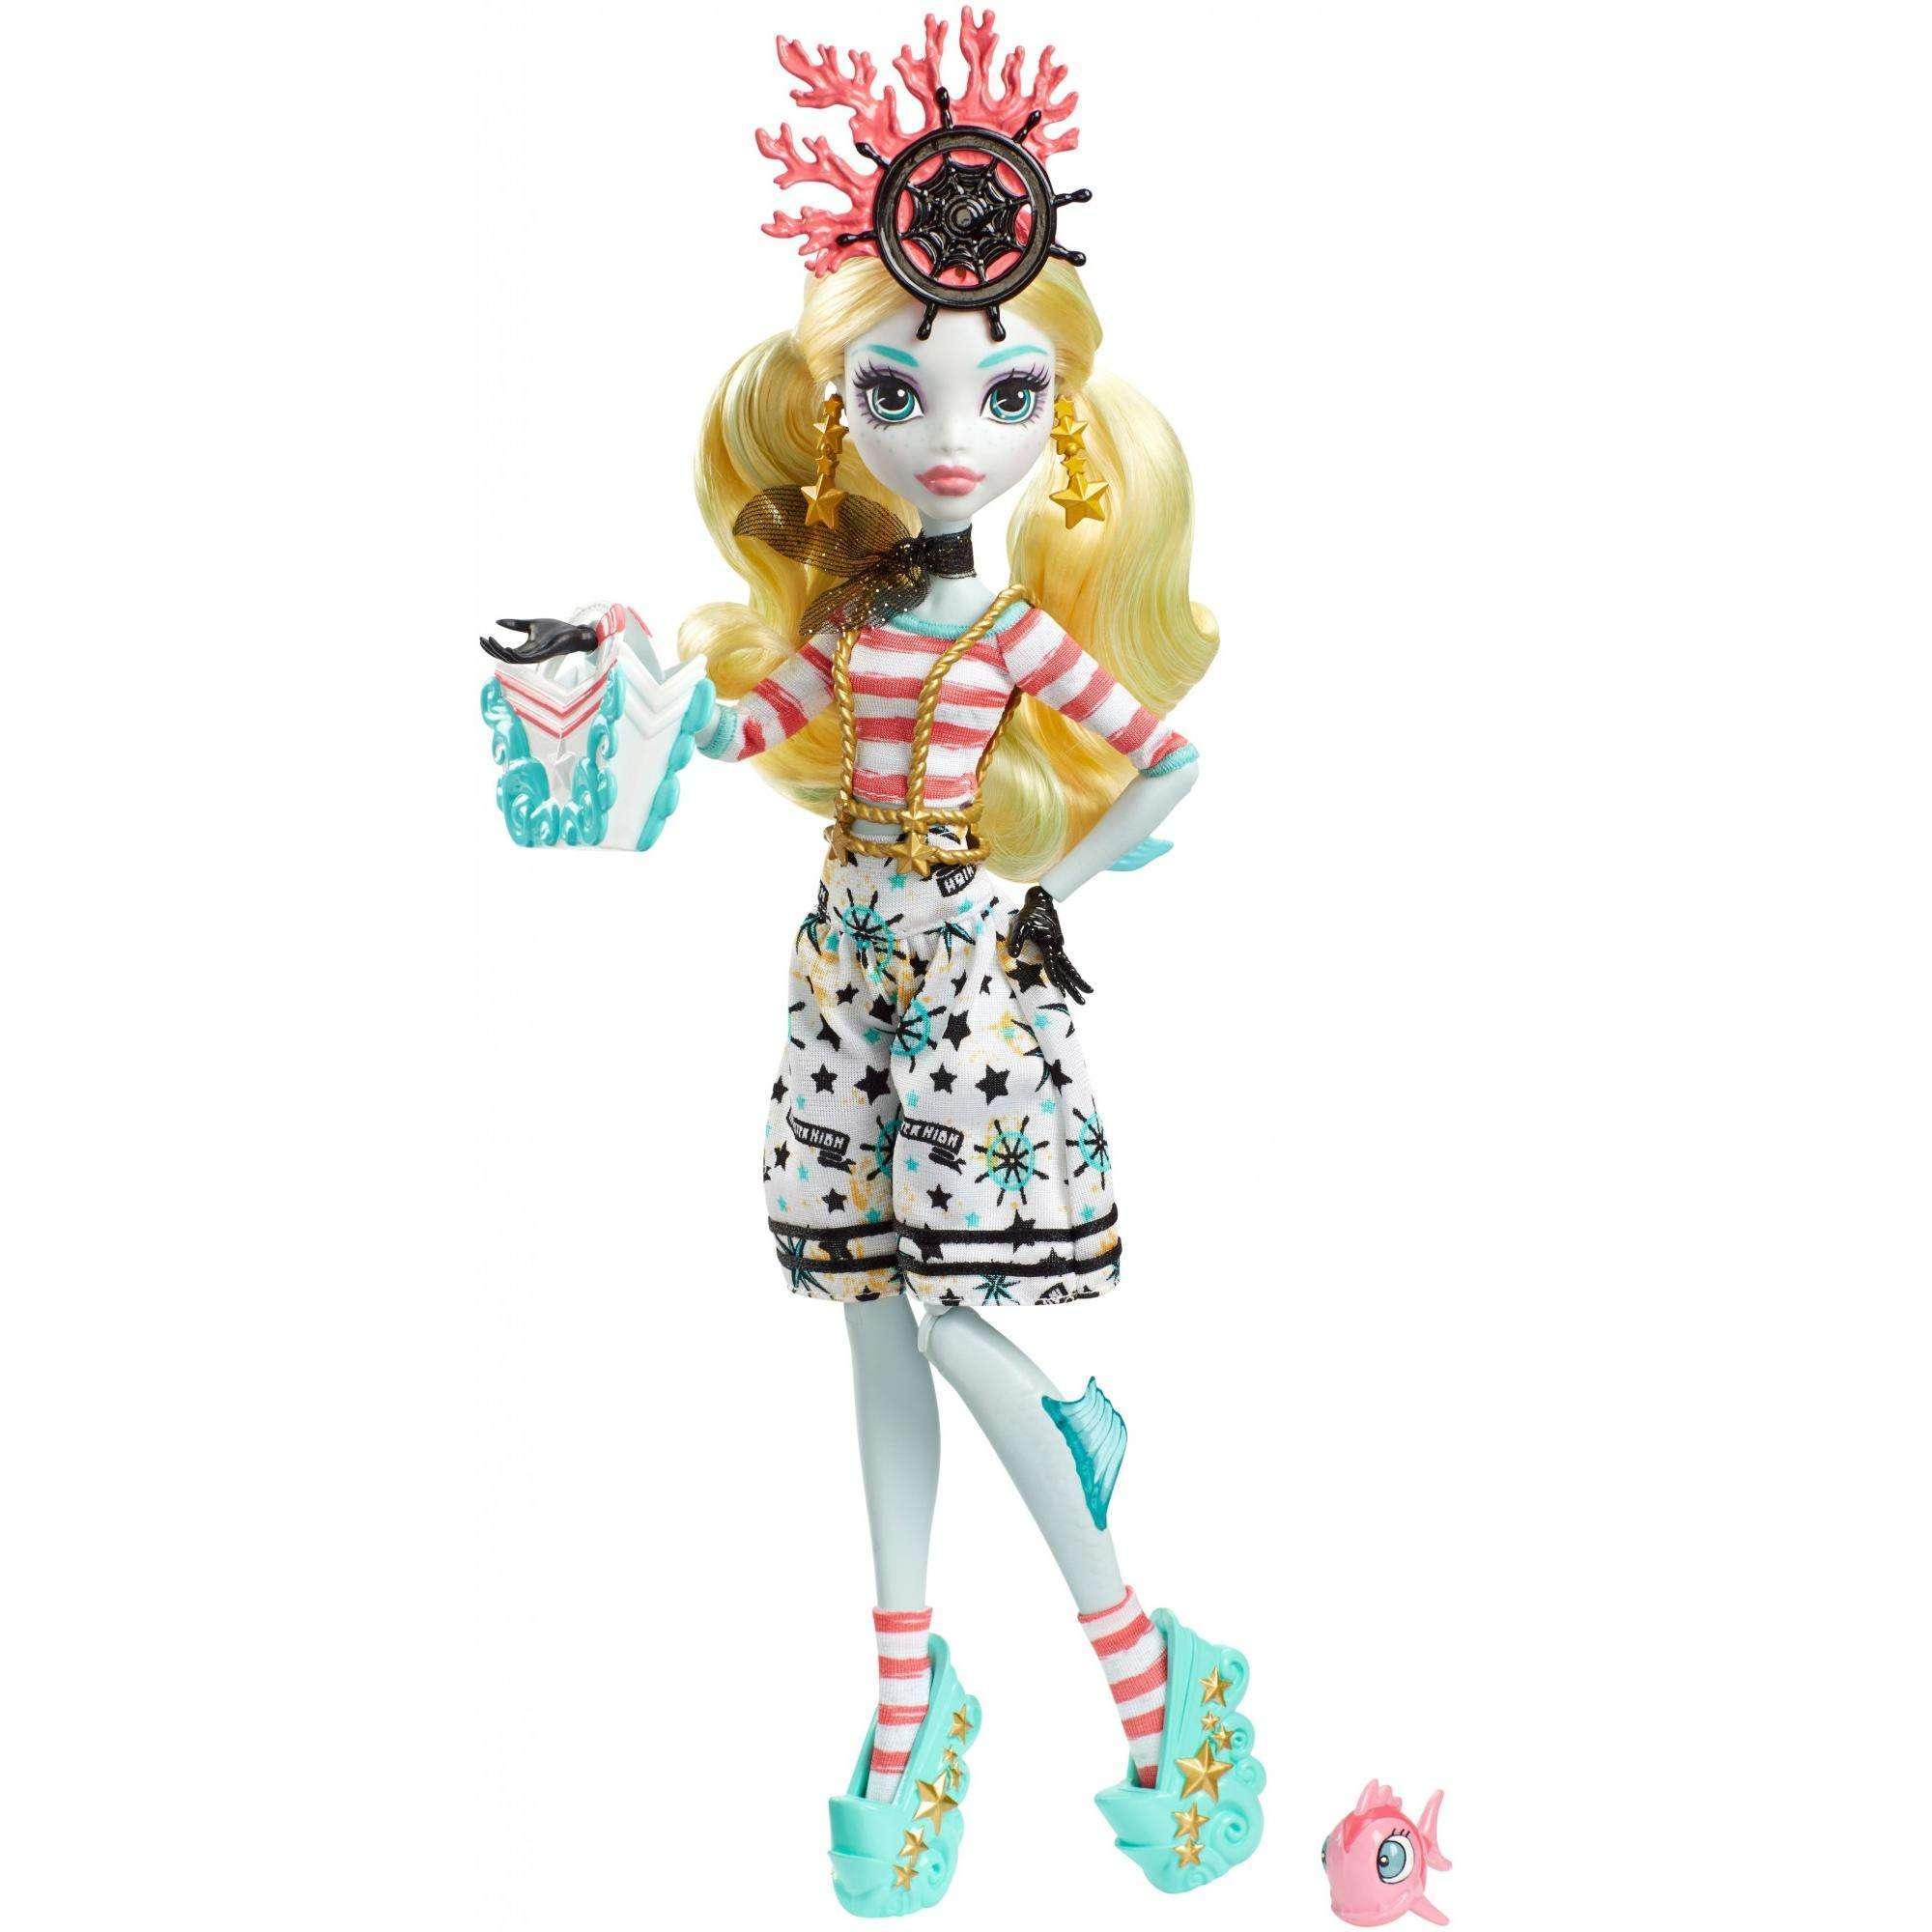 Monster High Shriekwrecked Nautical Ghouls Lagoona Blue Doll by Mattel